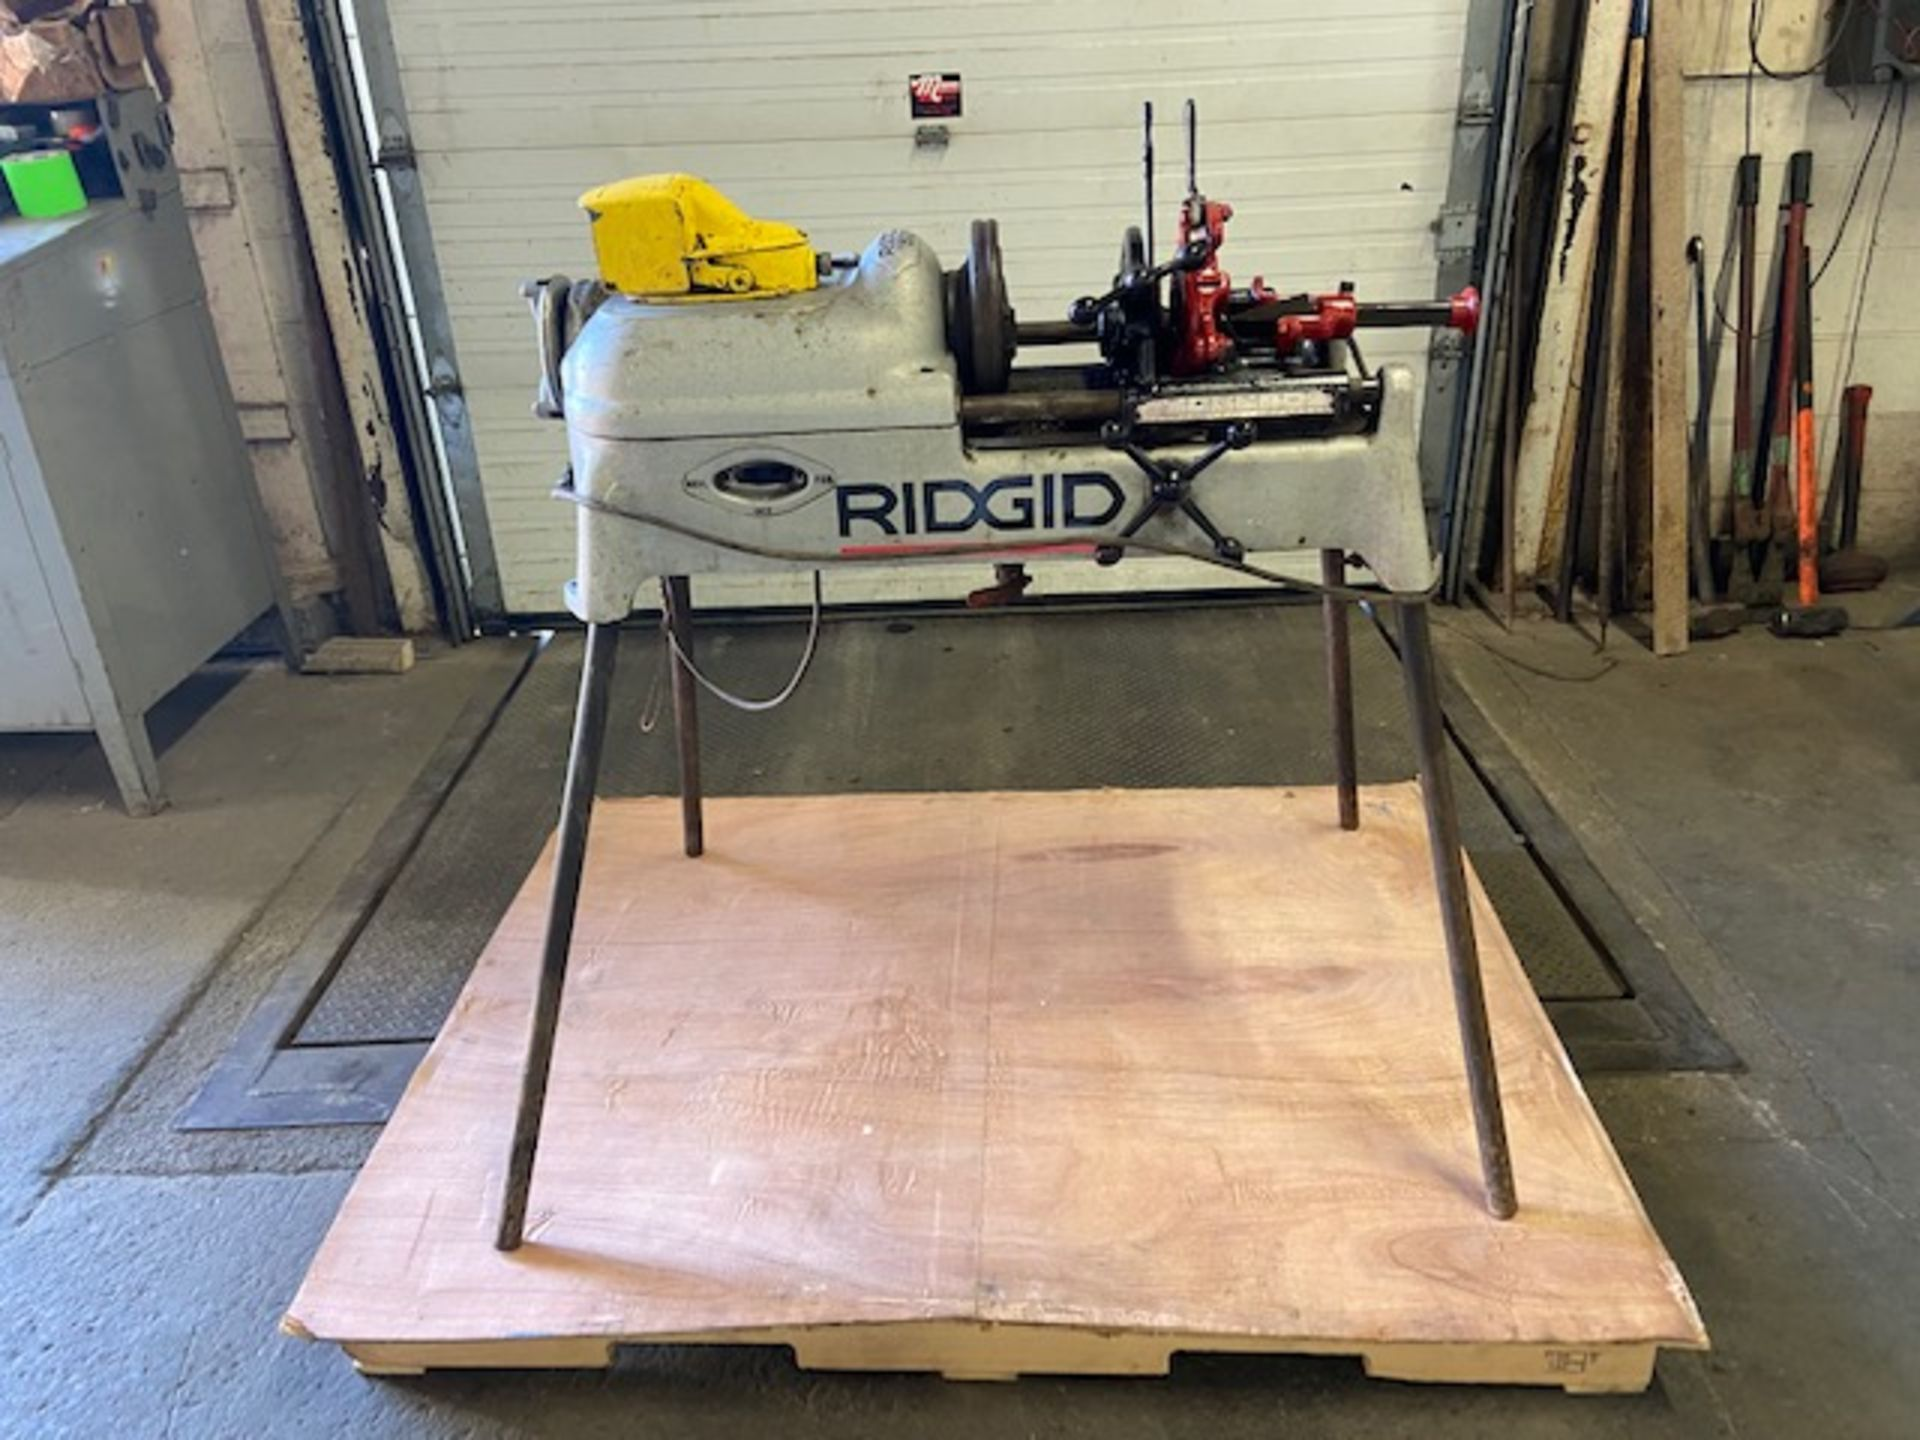 Ridgid 535 Pipe Threading Unit with Cutter and Threading Die and foot pedal Complete